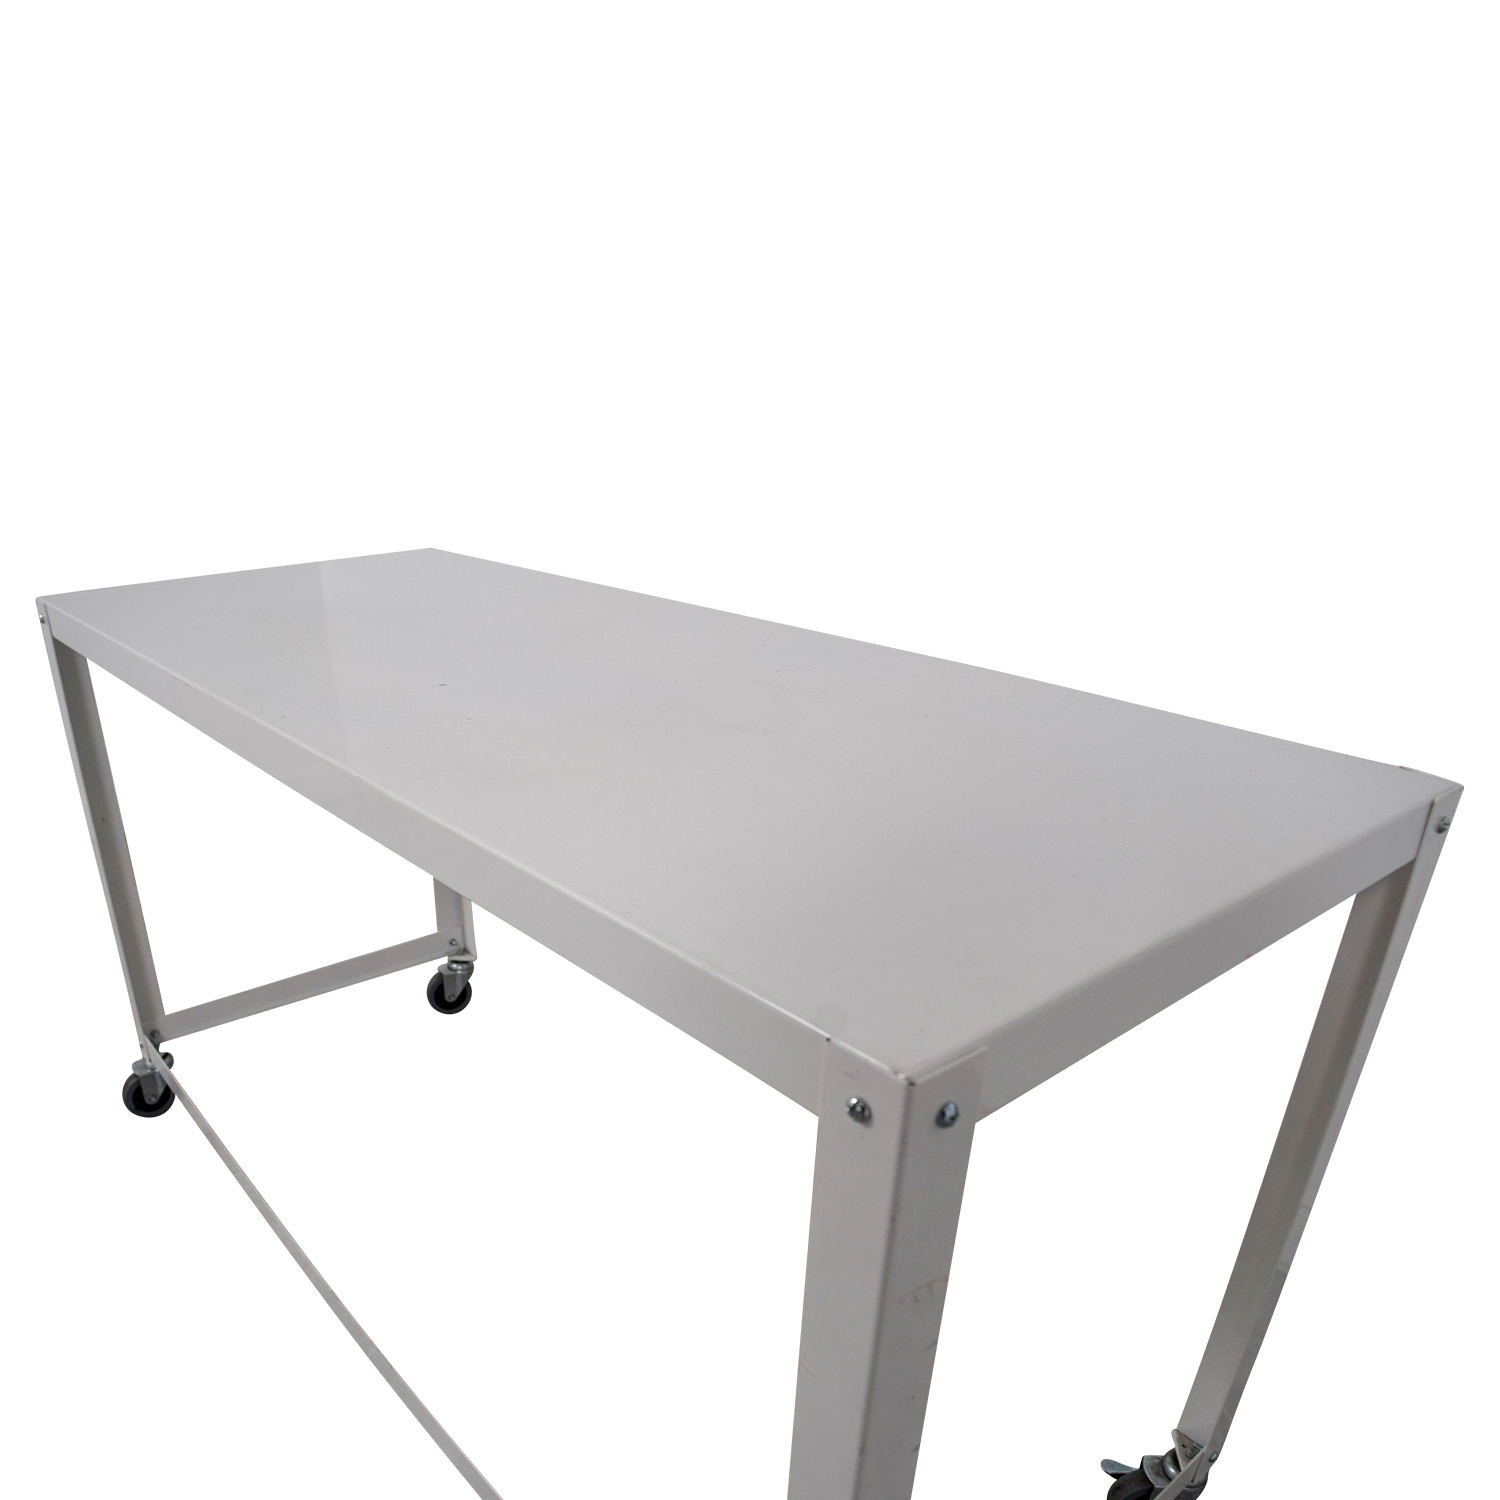 [%81% Off – Cb2 Cb2 Go Cart White Rolling Desk / Tables For Favorite Go Cart White Rolling Coffee Tables|Go Cart White Rolling Coffee Tables Regarding Famous 81% Off – Cb2 Cb2 Go Cart White Rolling Desk / Tables|Fashionable Go Cart White Rolling Coffee Tables Within 81% Off – Cb2 Cb2 Go Cart White Rolling Desk / Tables|Well Liked 81% Off – Cb2 Cb2 Go Cart White Rolling Desk / Tables For Go Cart White Rolling Coffee Tables%] (View 11 of 20)